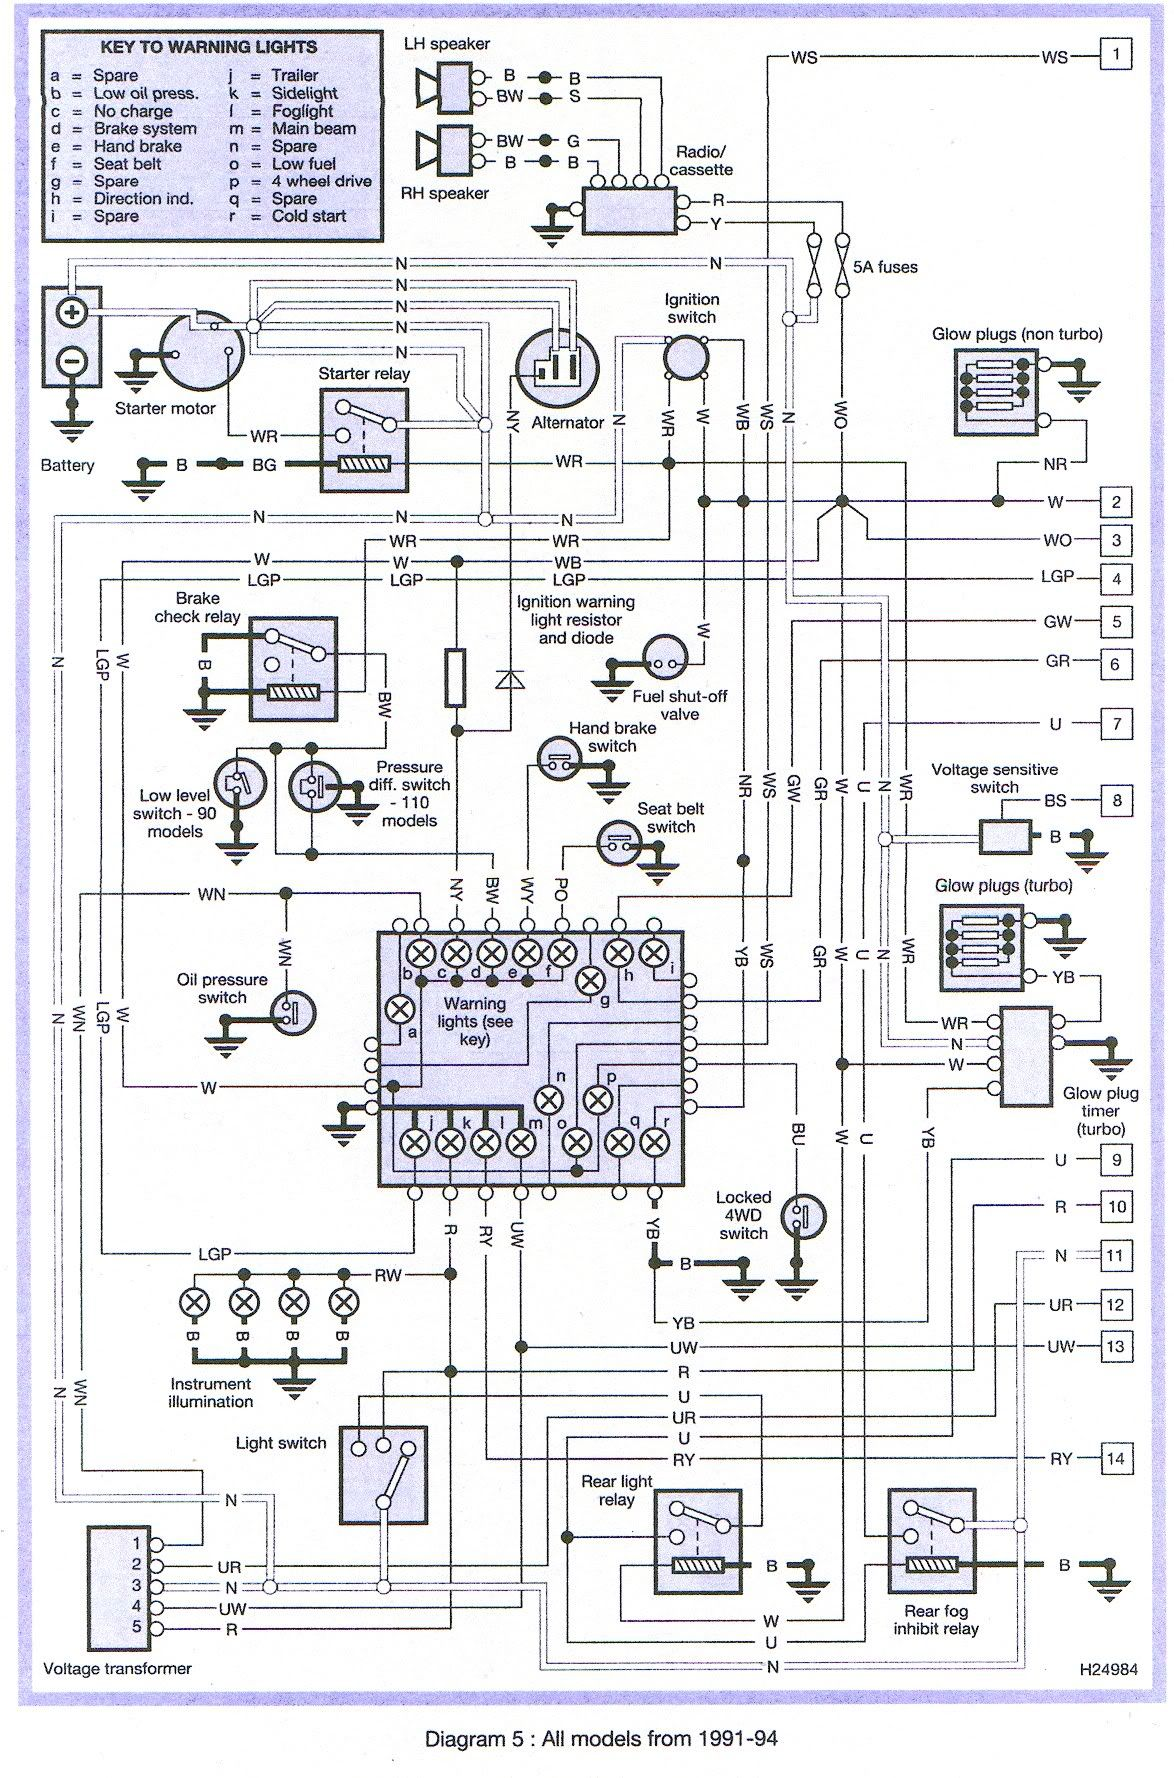 jeep patriot 2008 fuse box diagram [ 1174 x 1778 Pixel ]